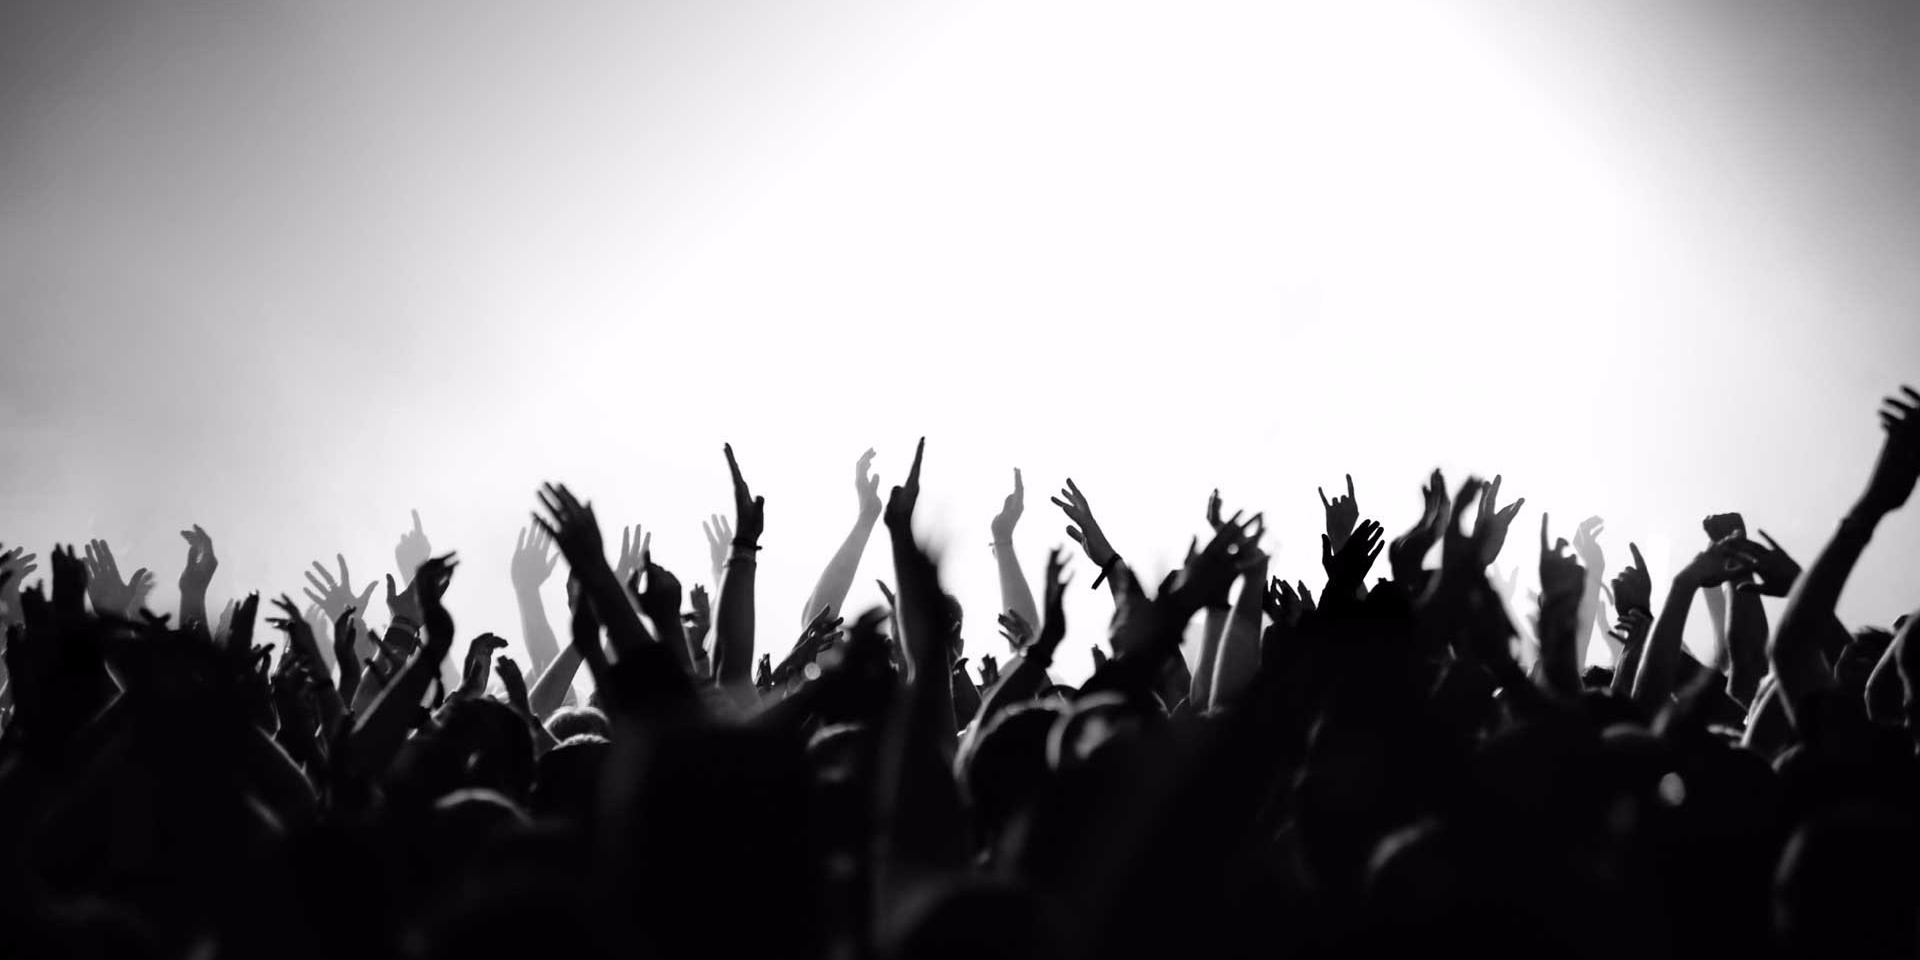 According to this report live music is serious business for Music entertainment